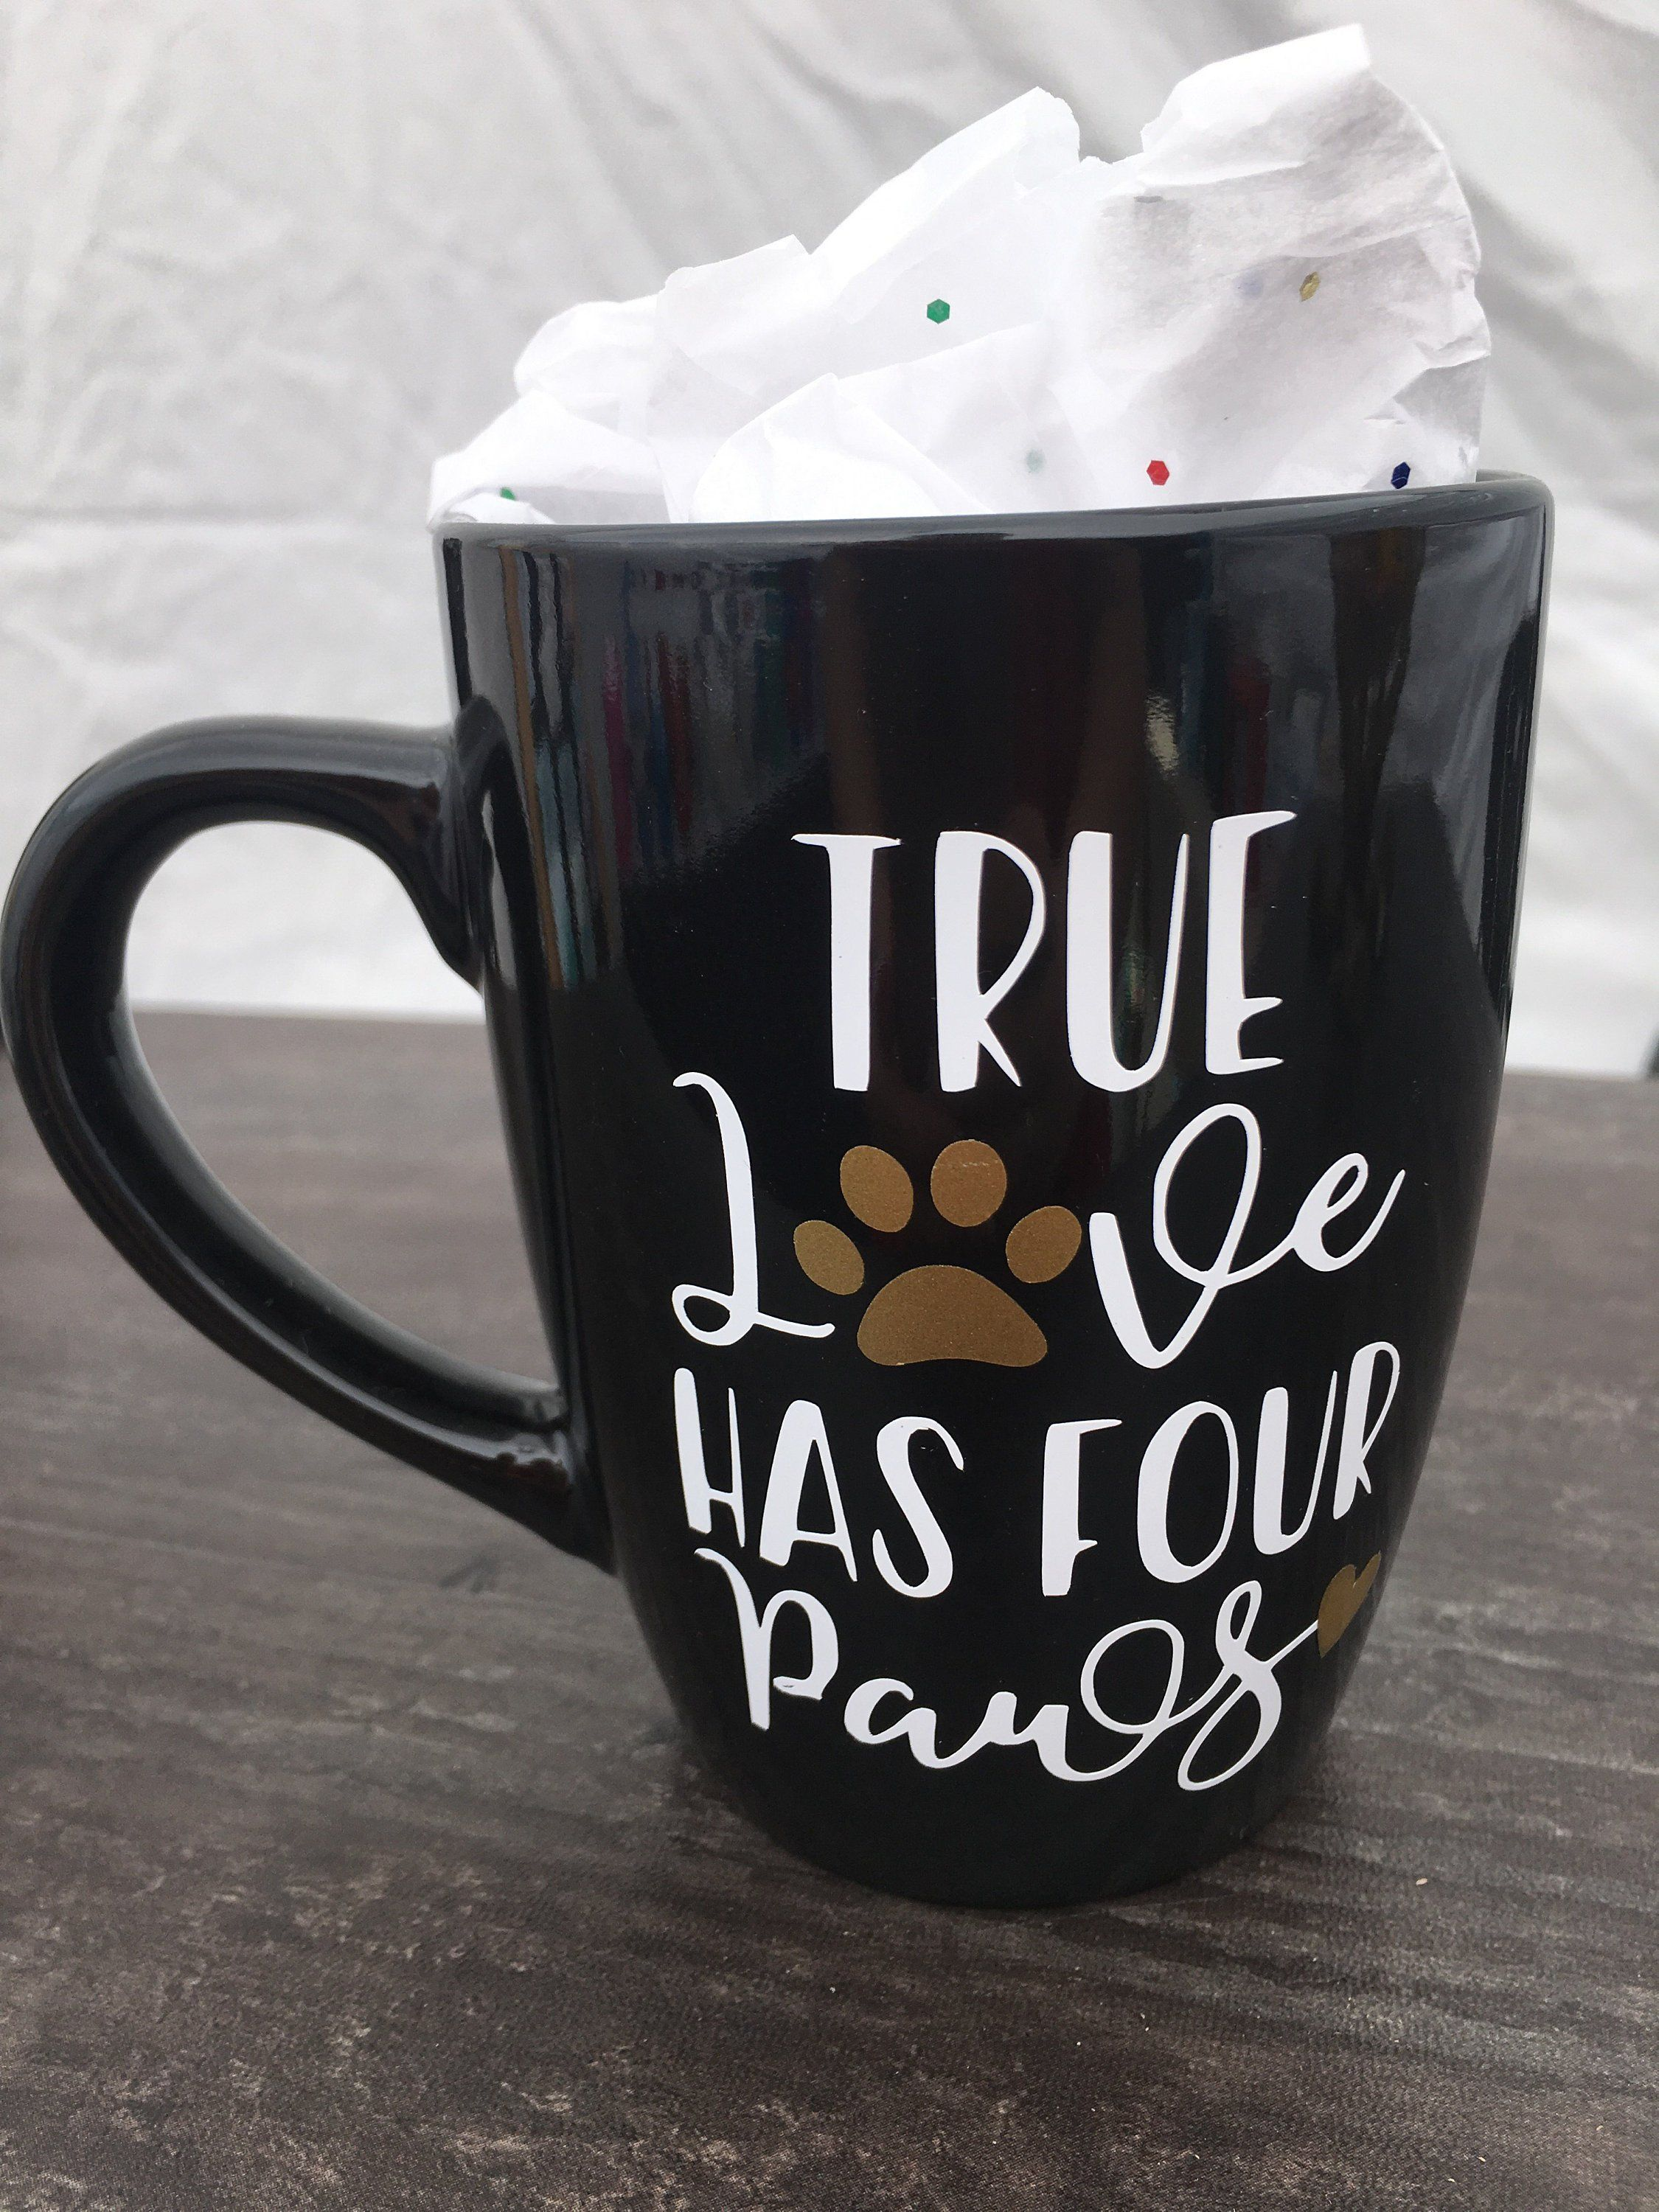 True love has four paws ceramic mug, coffee mug, tea mug